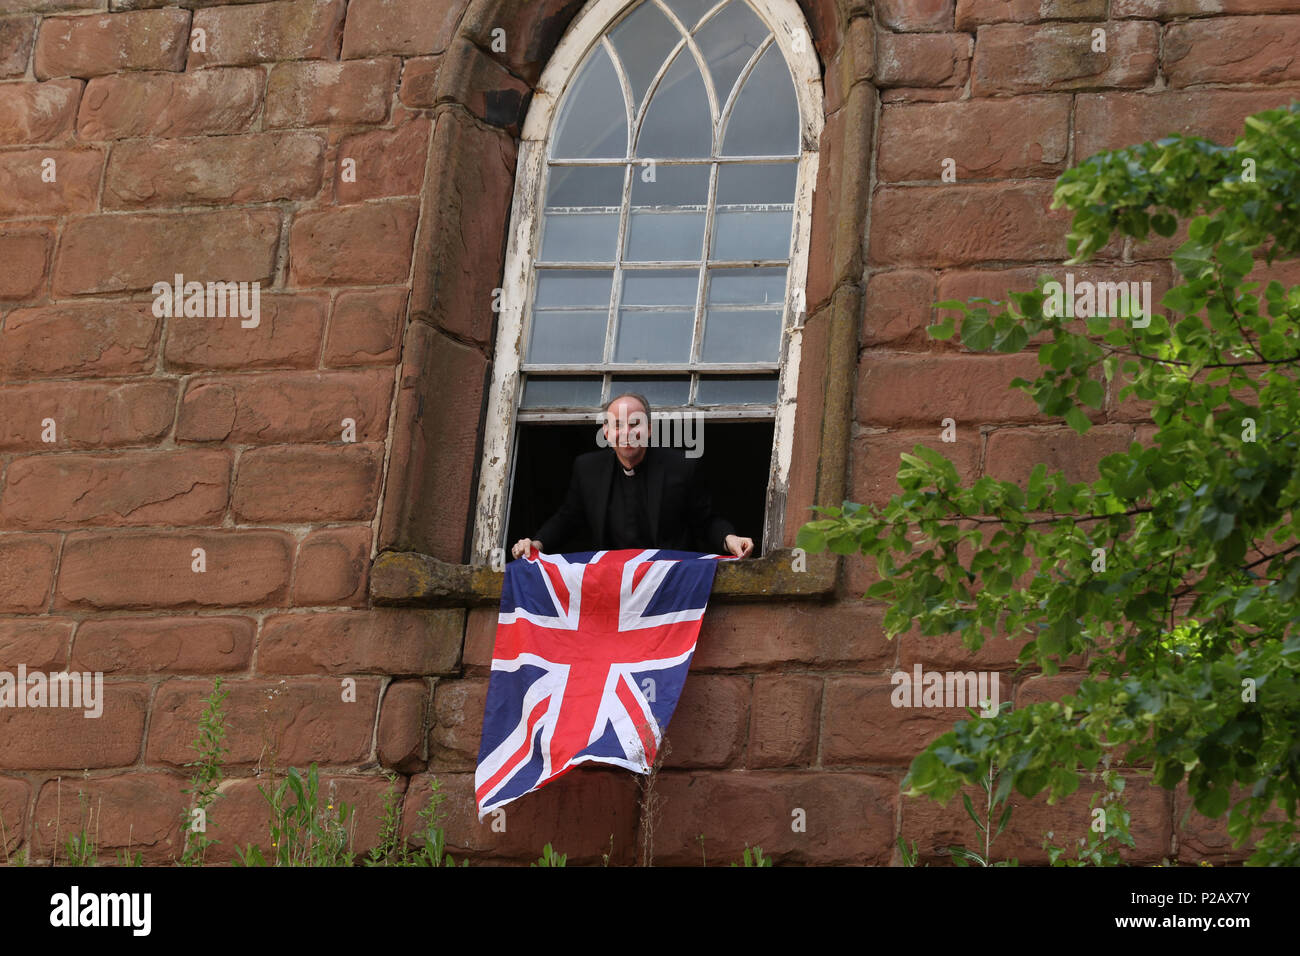 A member of the clergy hangs out a Union Jack Flag before HM Queen Elizabeth II and Meghan Markle, Duchess of Sussex, visit Chester on their first public engagement together. Chester, Cheshire, on June 14, 2018. Credit: Paul Marriott/Alamy Live News Stock Photo